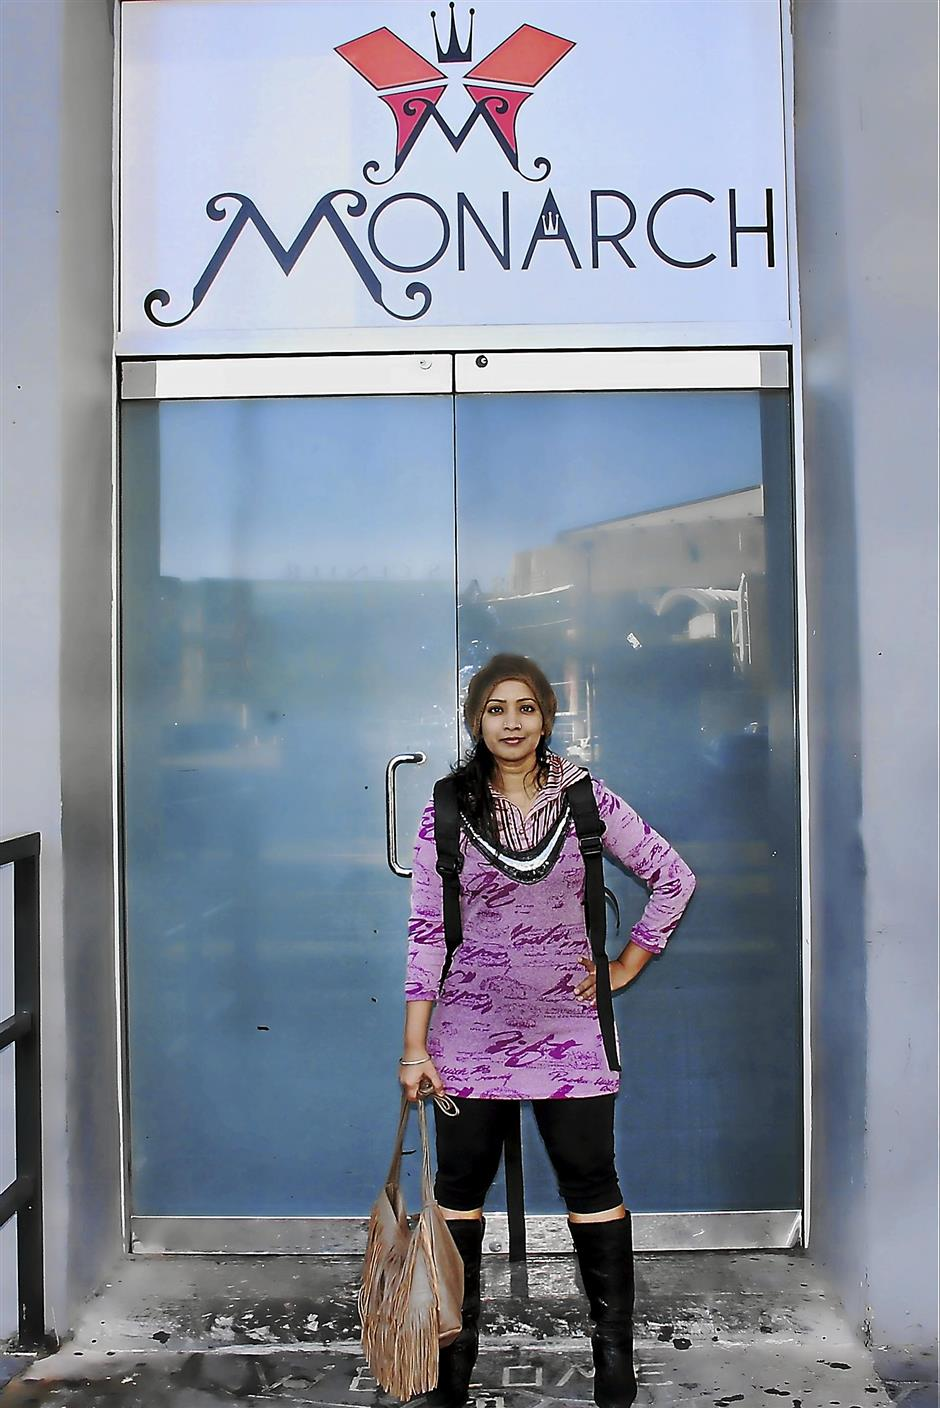 The writer at the Monarch Theatre in Phoenix, Arizona. She is participating at the RAW Artist Showcase today.